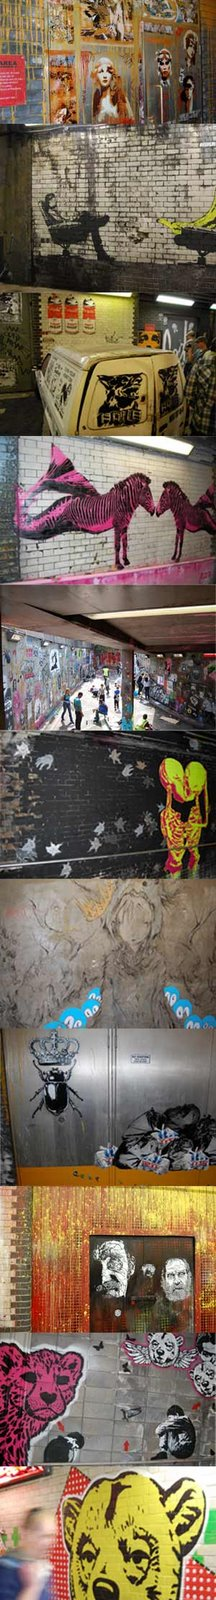 Some of the stencil art on display at the Cans Festival 2008 including work from Banksy, Dolk and Orticannoodles